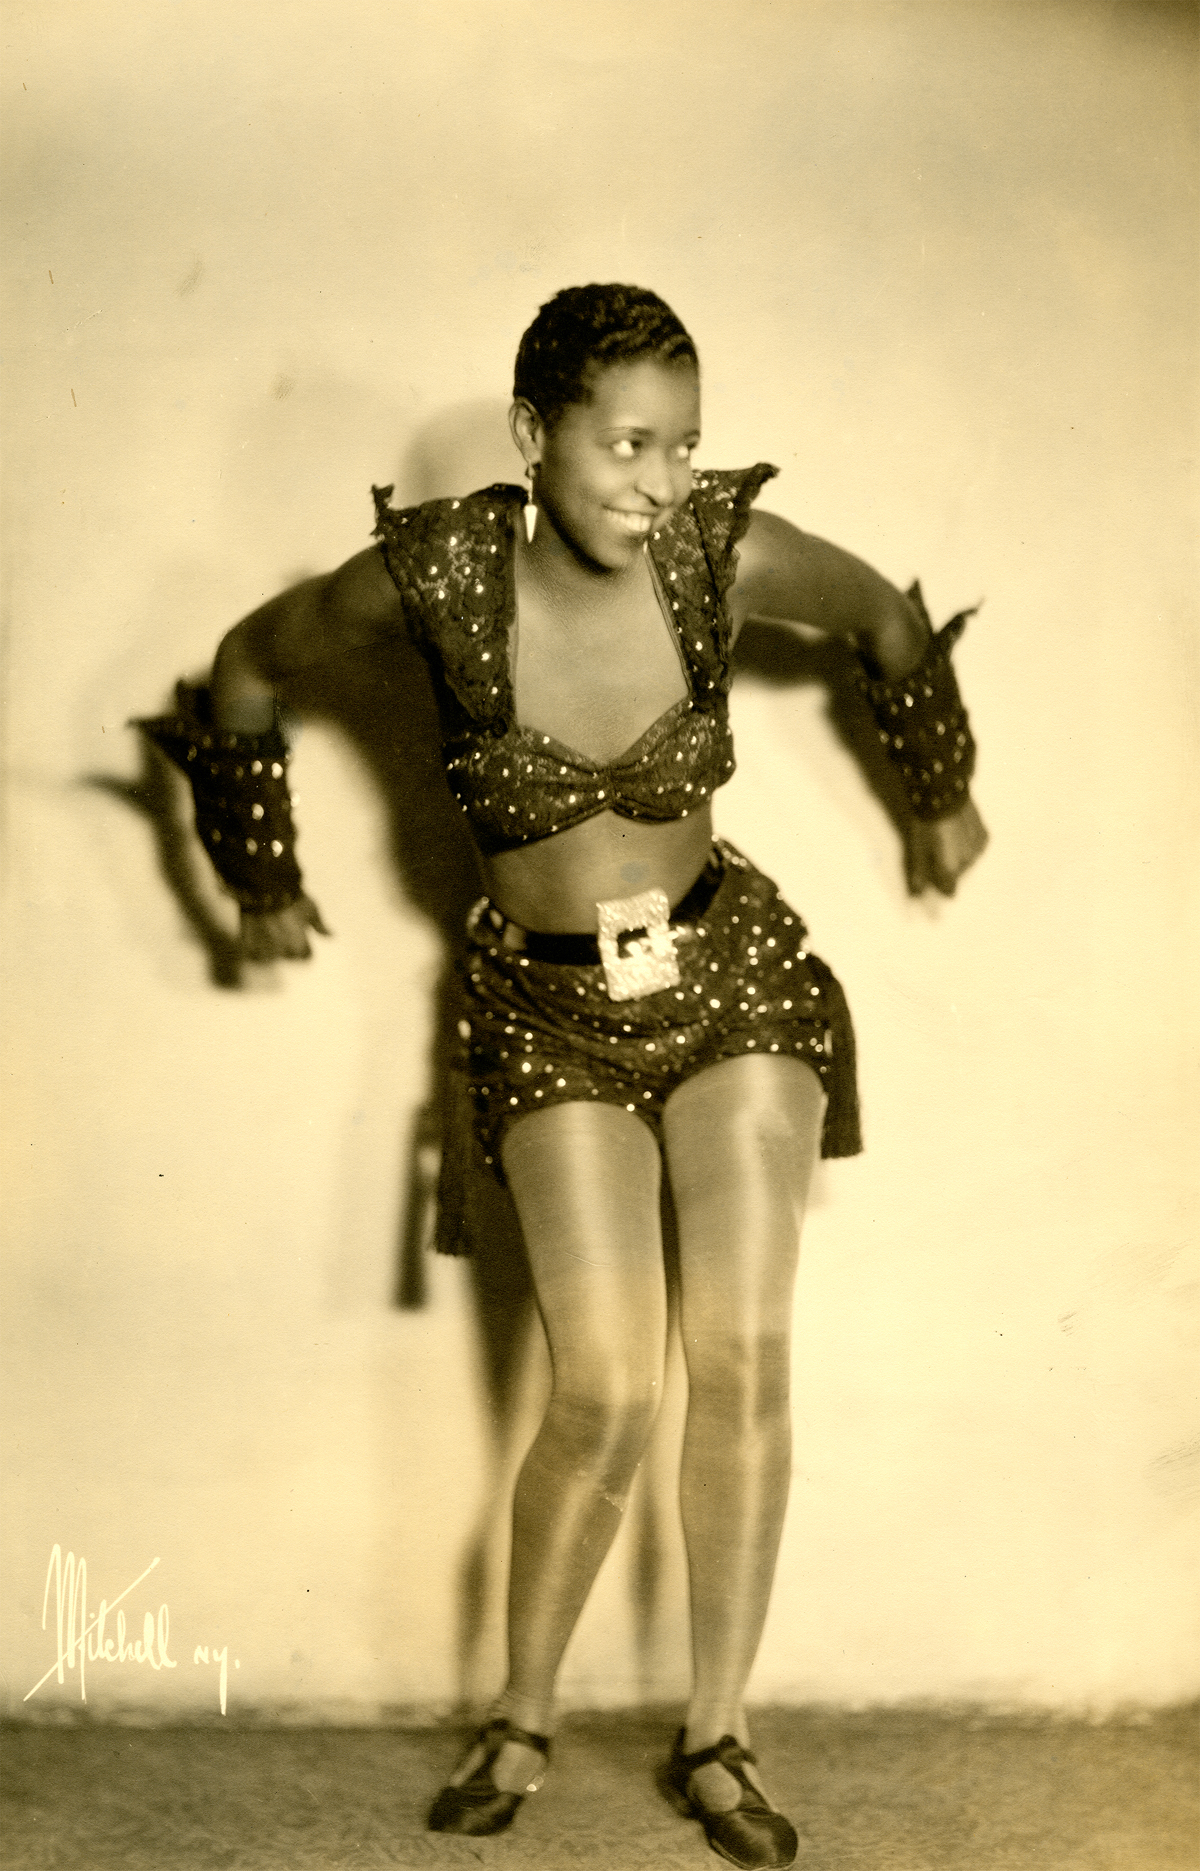 Herbert Mitchell (American, 1898-1980), [Ethel Waters], 1931. Gelatin silver print, 35.5 x 27.8 cm. Theater Biography Collect